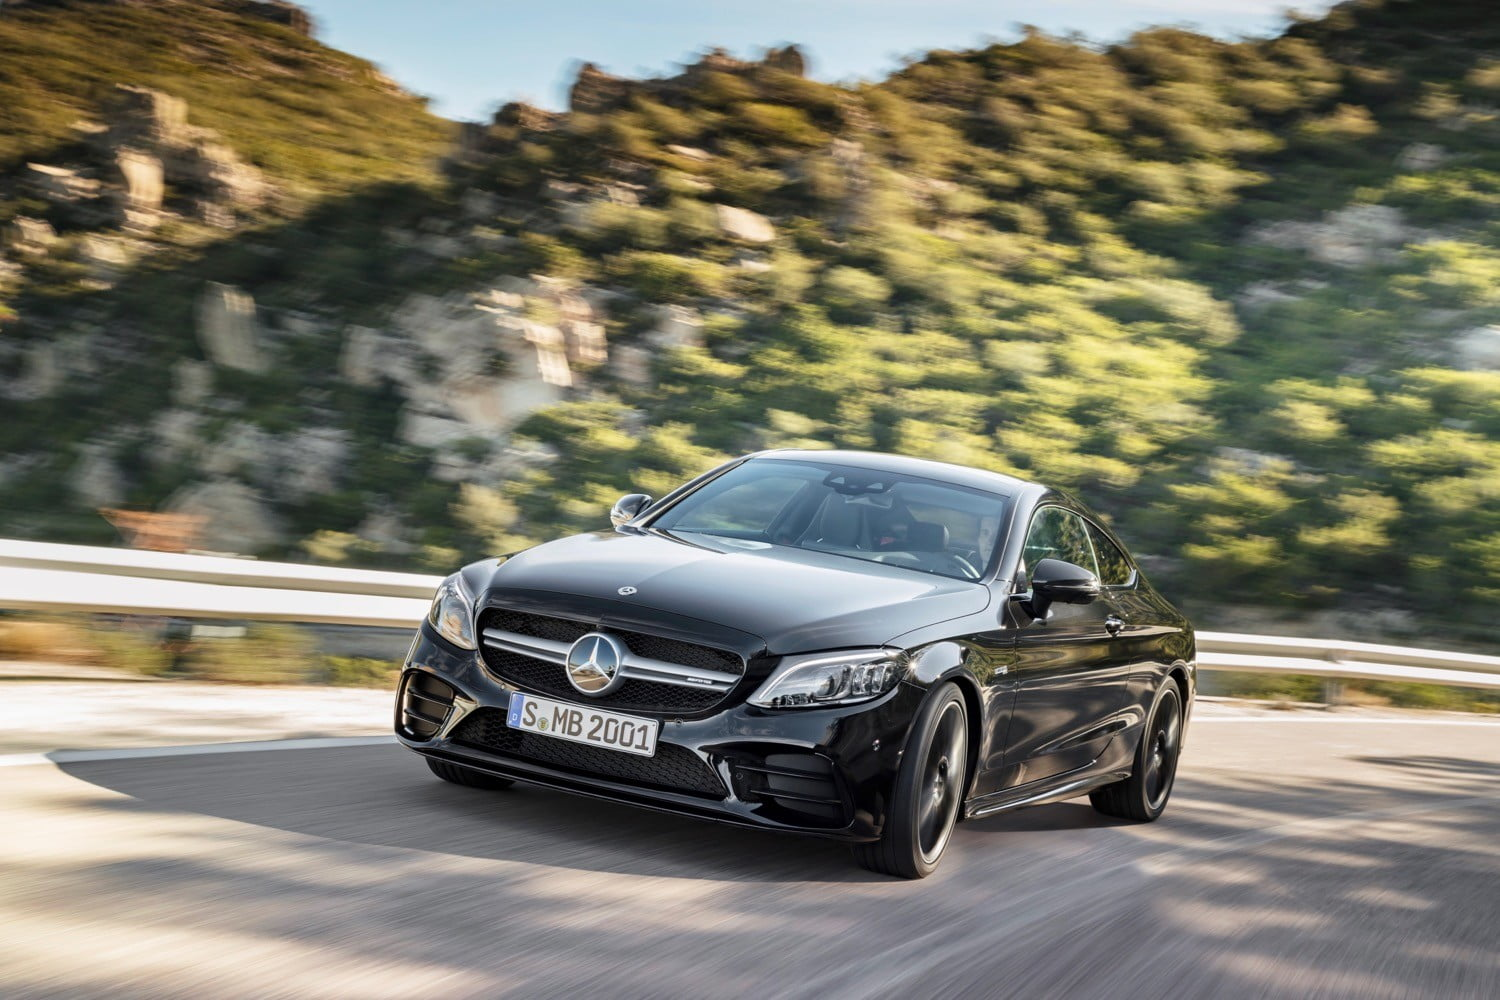 Mercedes' new C-Class coupe packs up to 385 horsepower and a 10-inch touchscreen